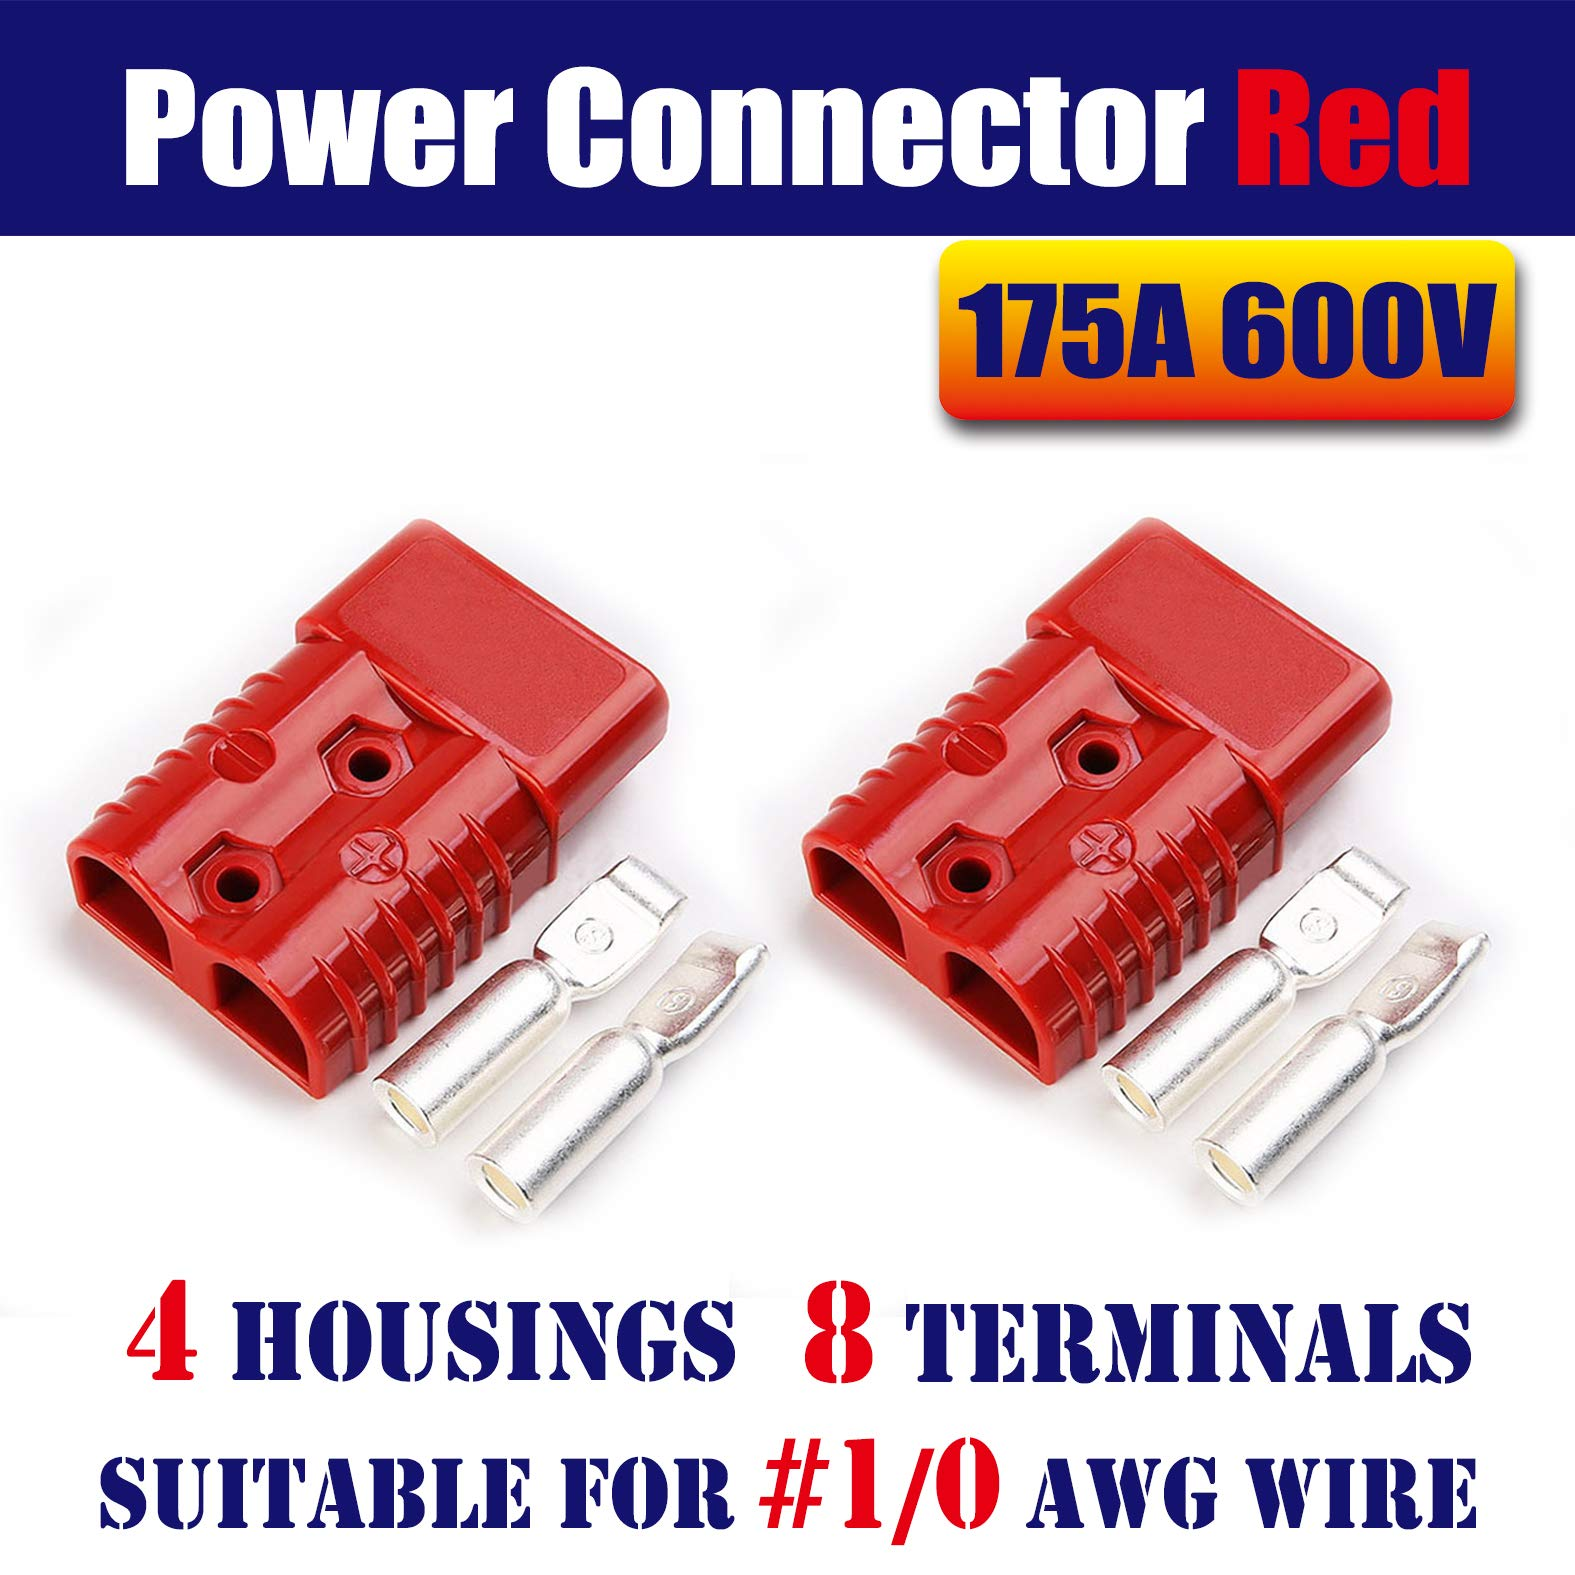 Mr.Brighton LED 175Amp Anderson Compatible 2 Pole Power Connector Plug Red w/Terminals for #1/0 AWG Wire[4 housing+8 Terminal pins] by Mr.Brighton LED